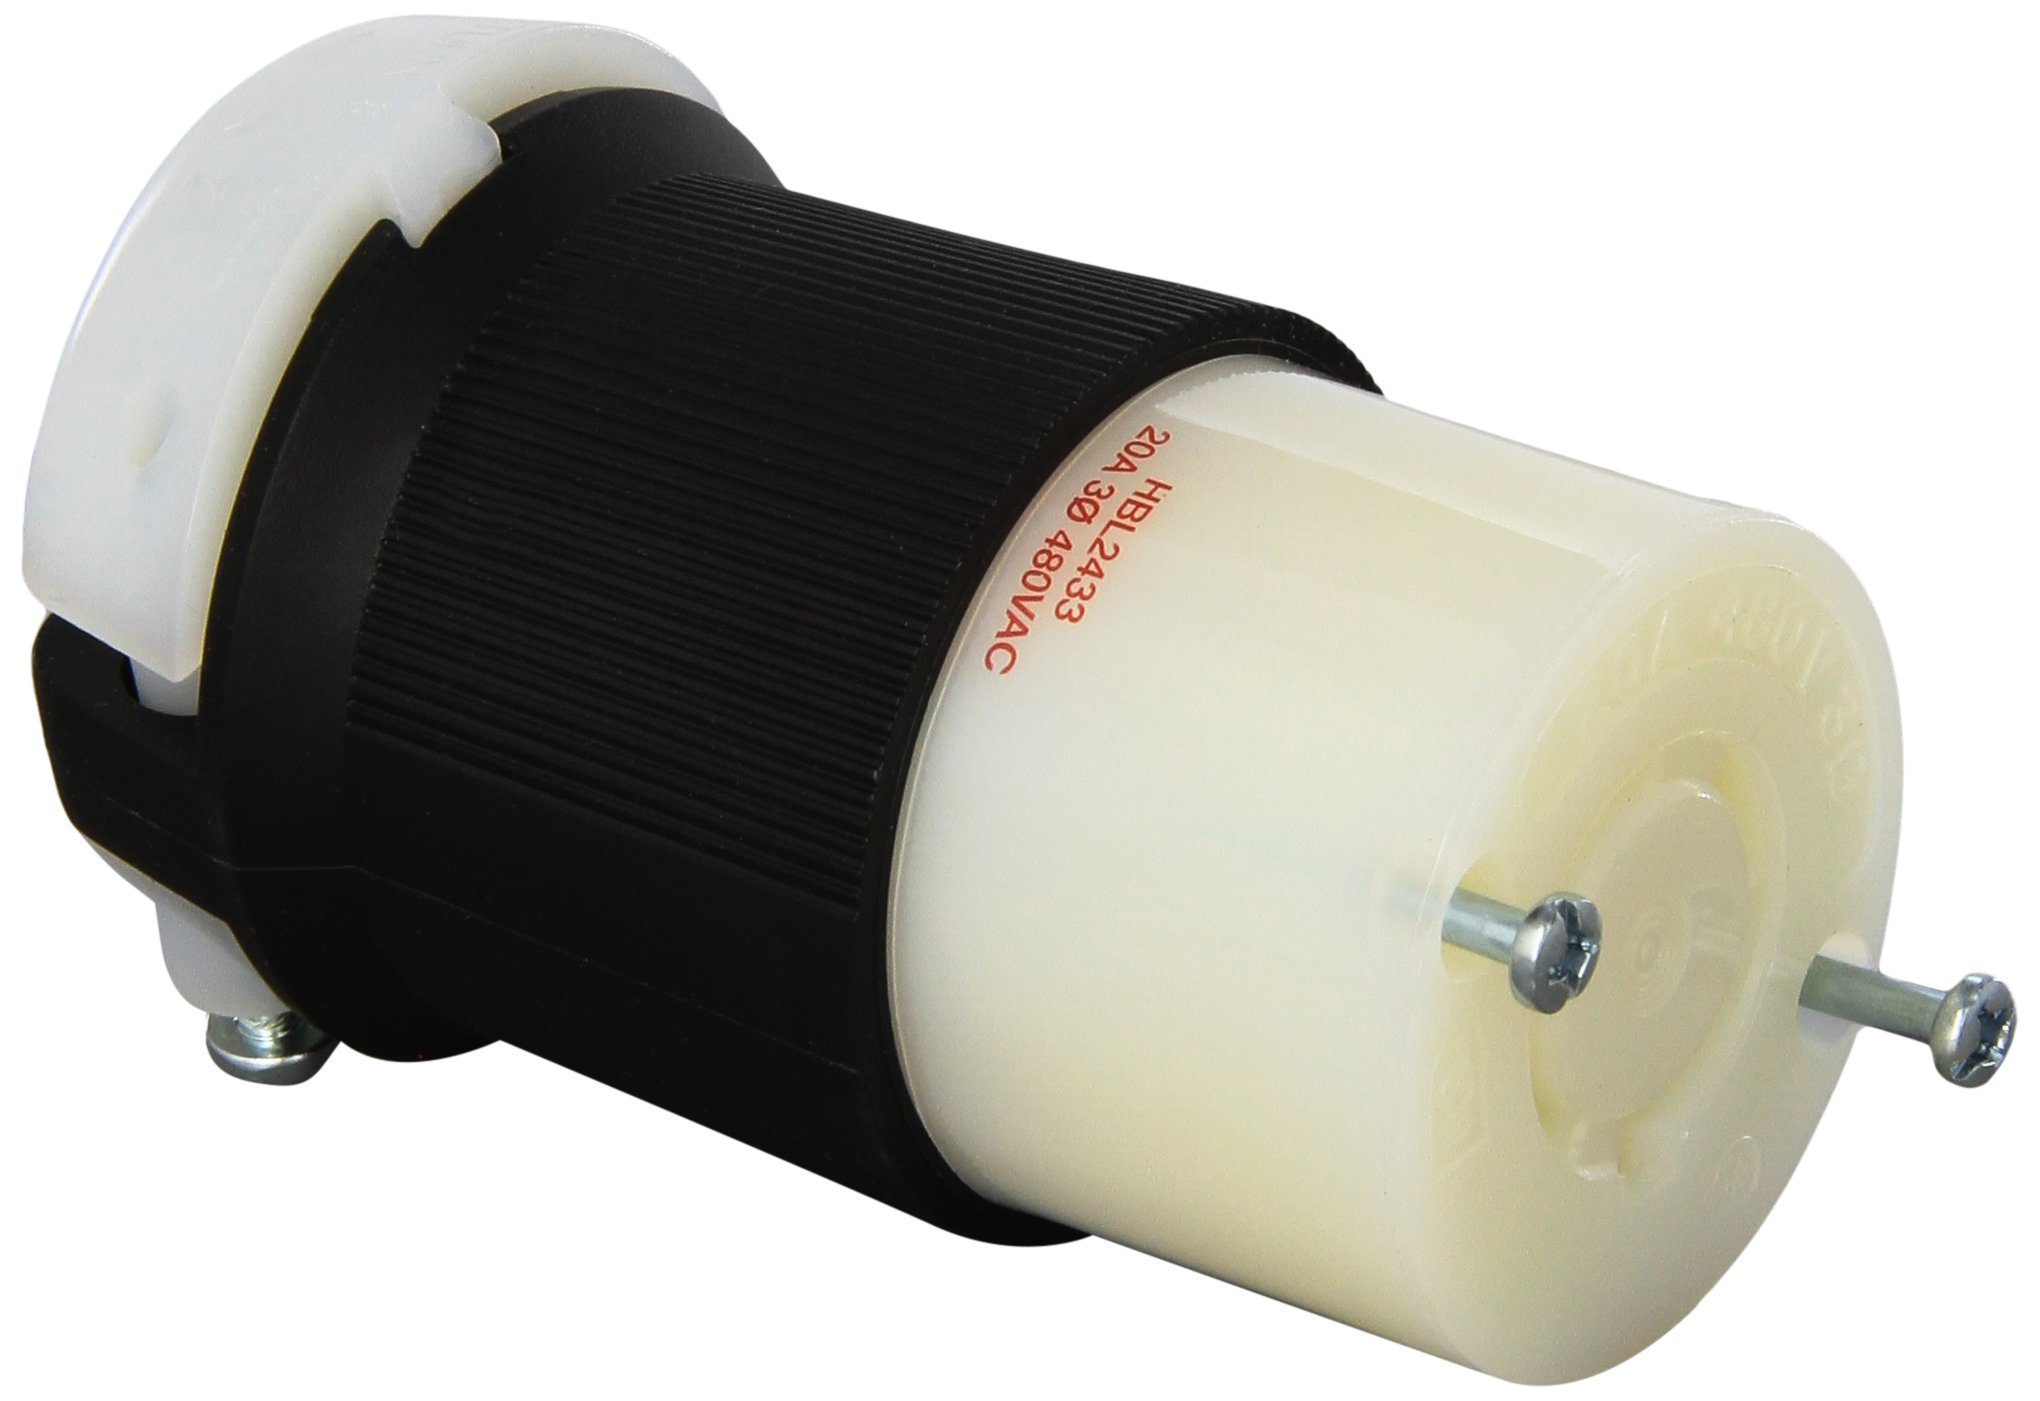 Hubbell HBL2433 Locking Connector, 20 amp, 3 Phase, 480V, L16-20R, Black and White